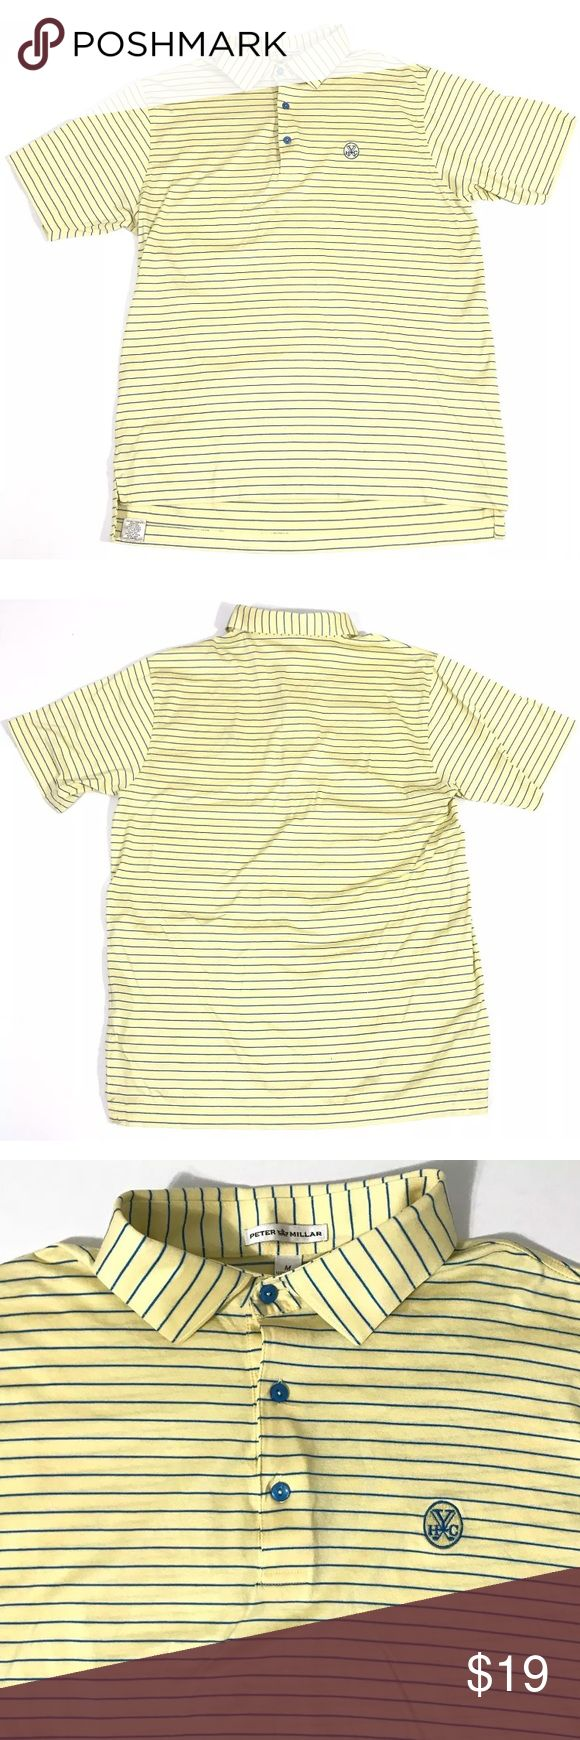 Peter Millar Polo Collared Shirt Men Size Medium Peter Millar Yellow Blue Striped Polo S/S Collared Shirt Men Adult Size Medium  This top is in great condition with no stains/rips/odors. Please see all pictures. Peter Millar Shirts Polos